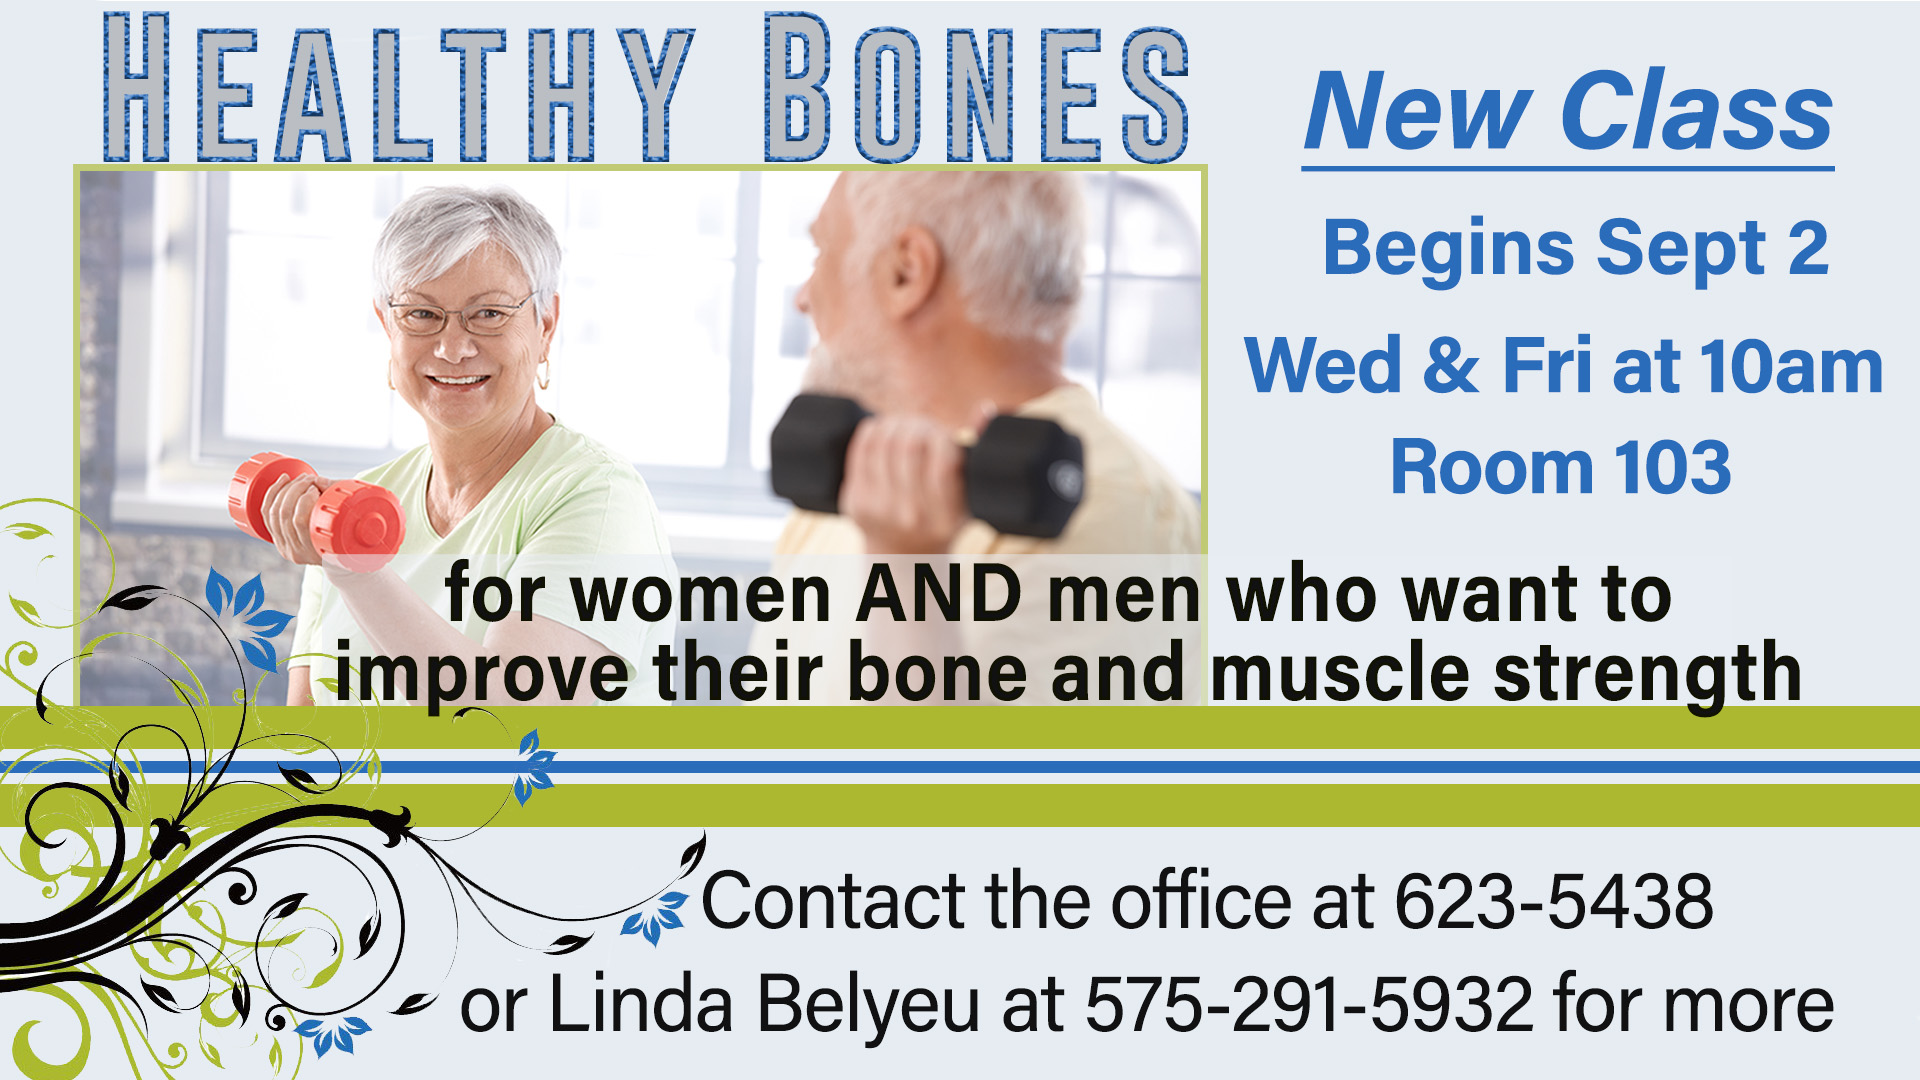 Healthy Bones Announcement